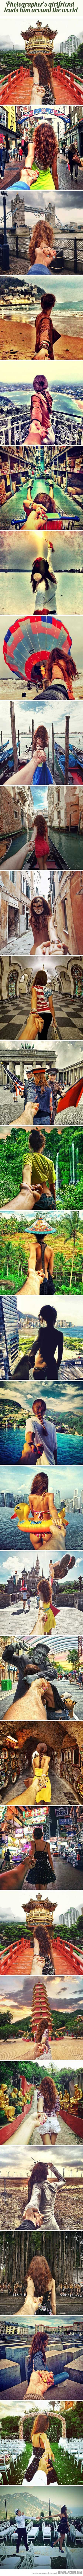 Such a cool idea for vacation pictures! Pictures of photographer's girlfriend leading him around the world.